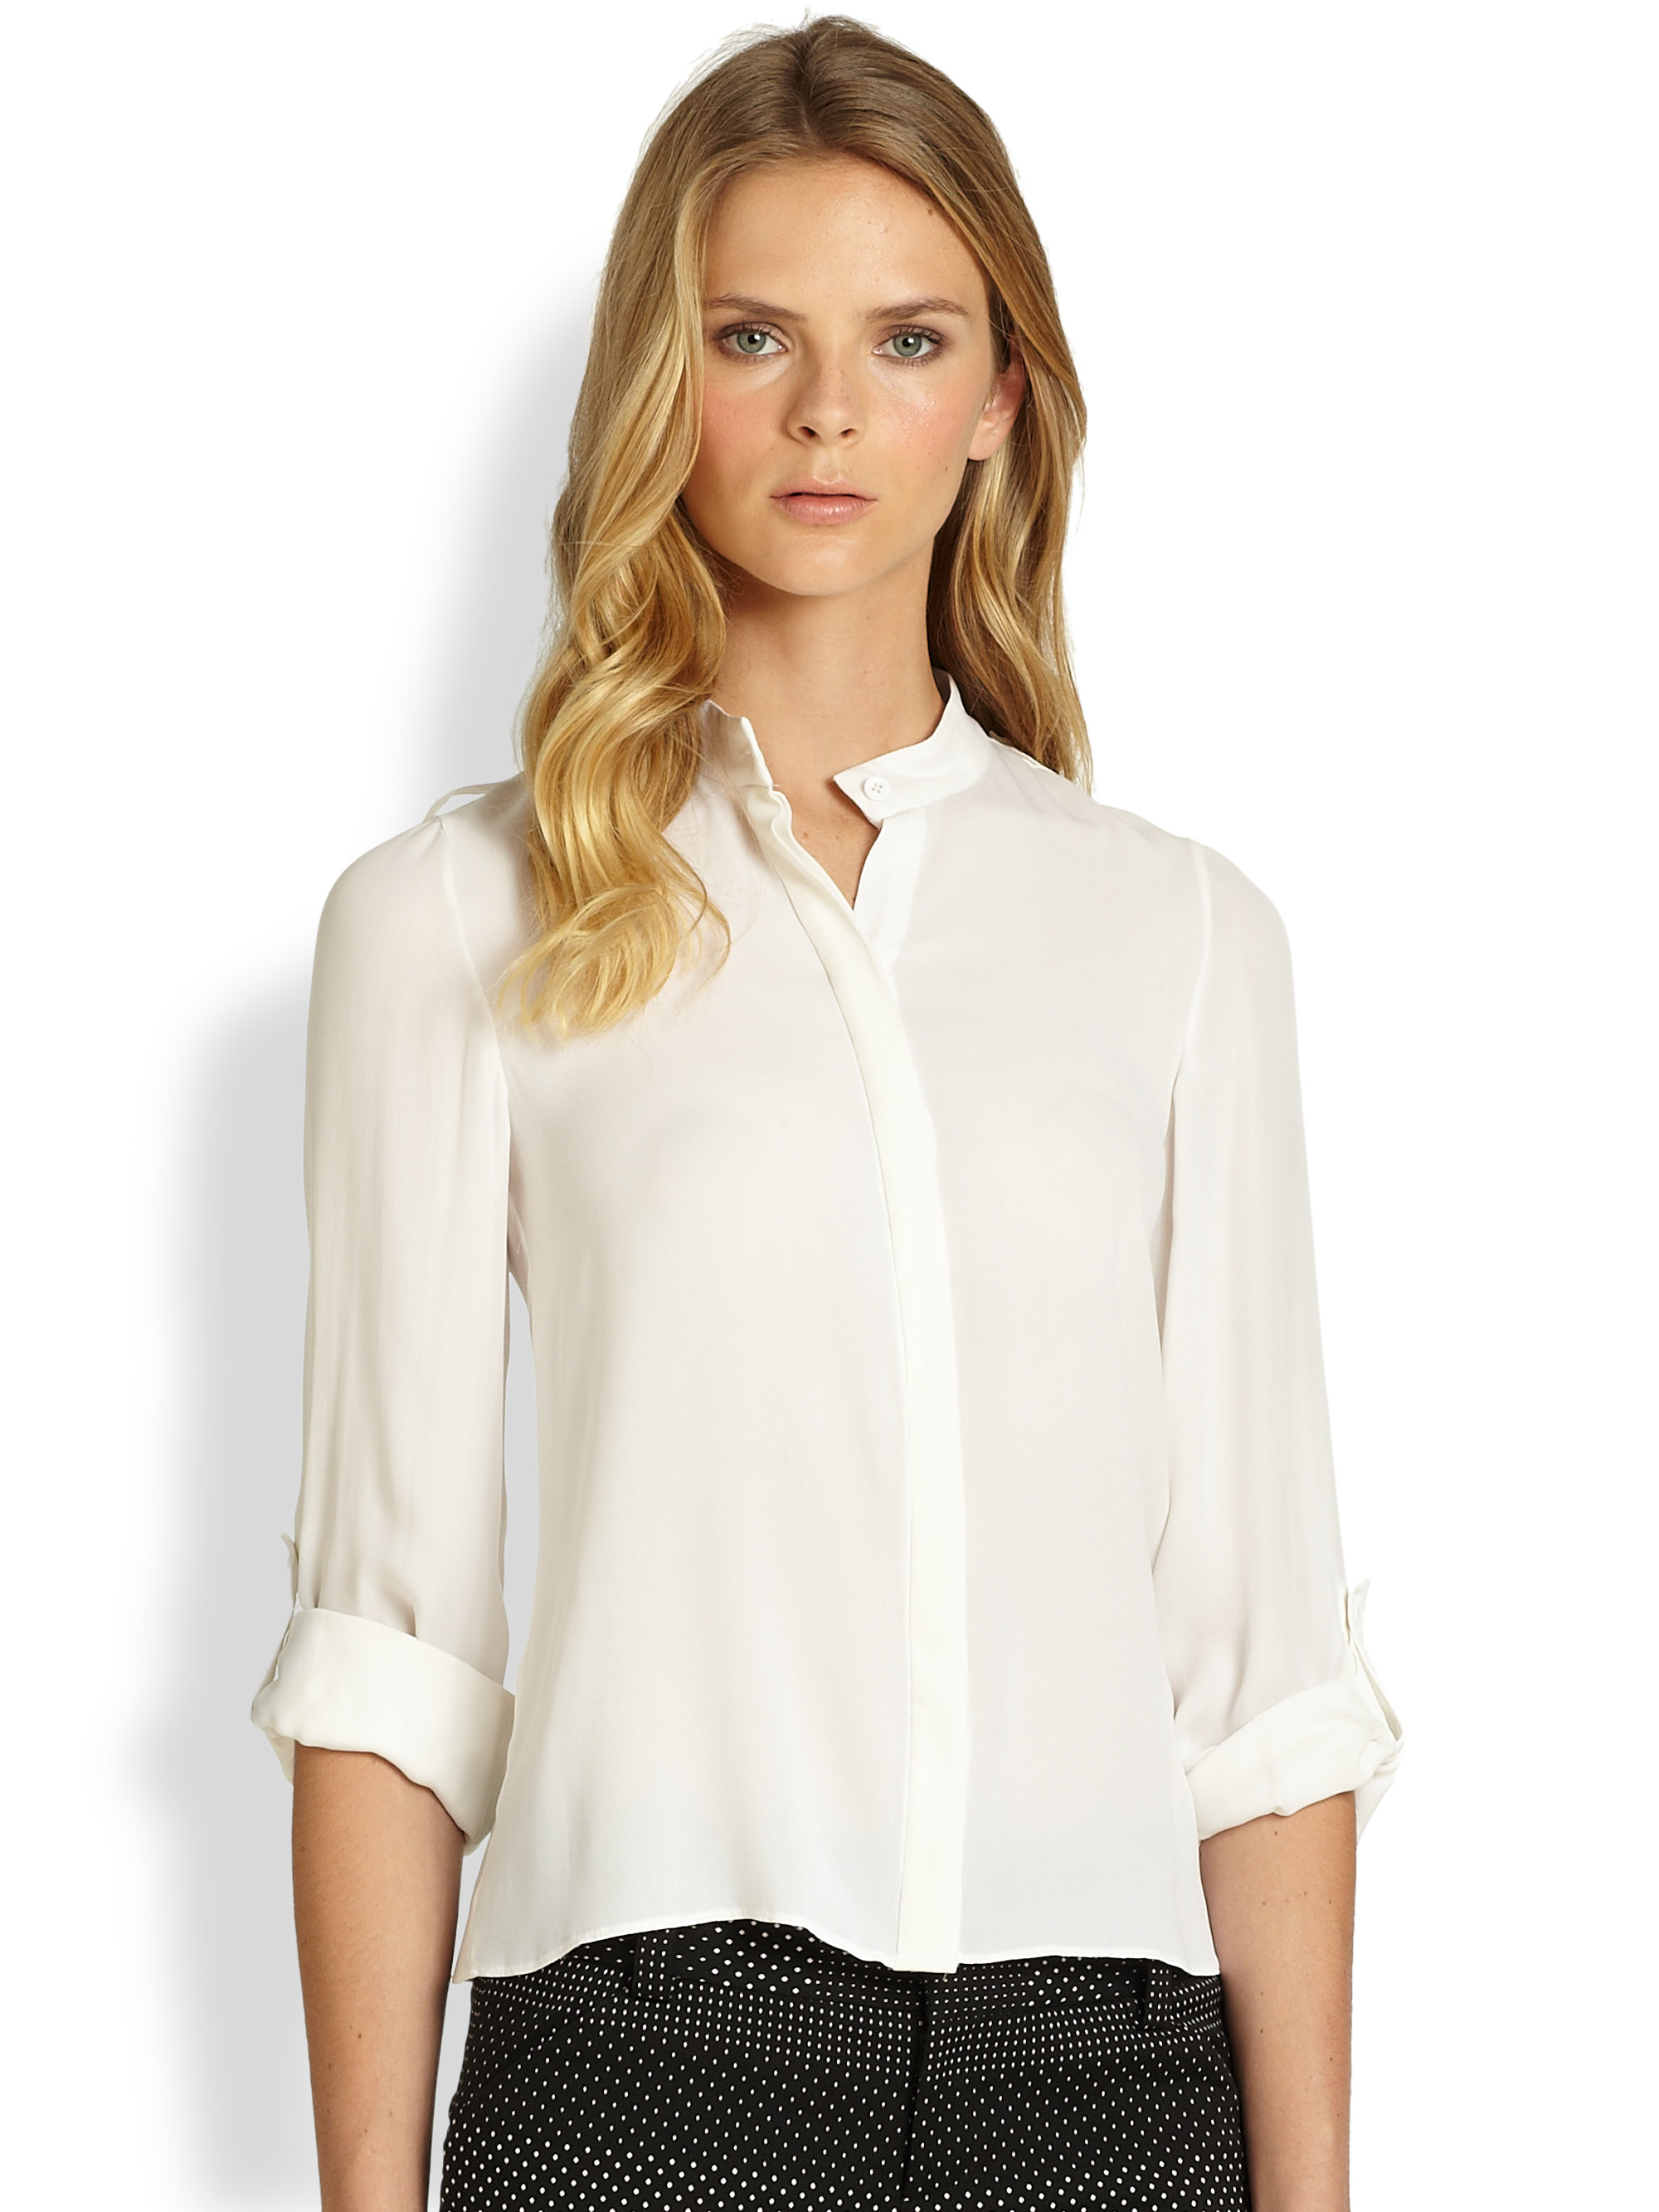 Find great deals on eBay for white blouse with collar. Shop with confidence.